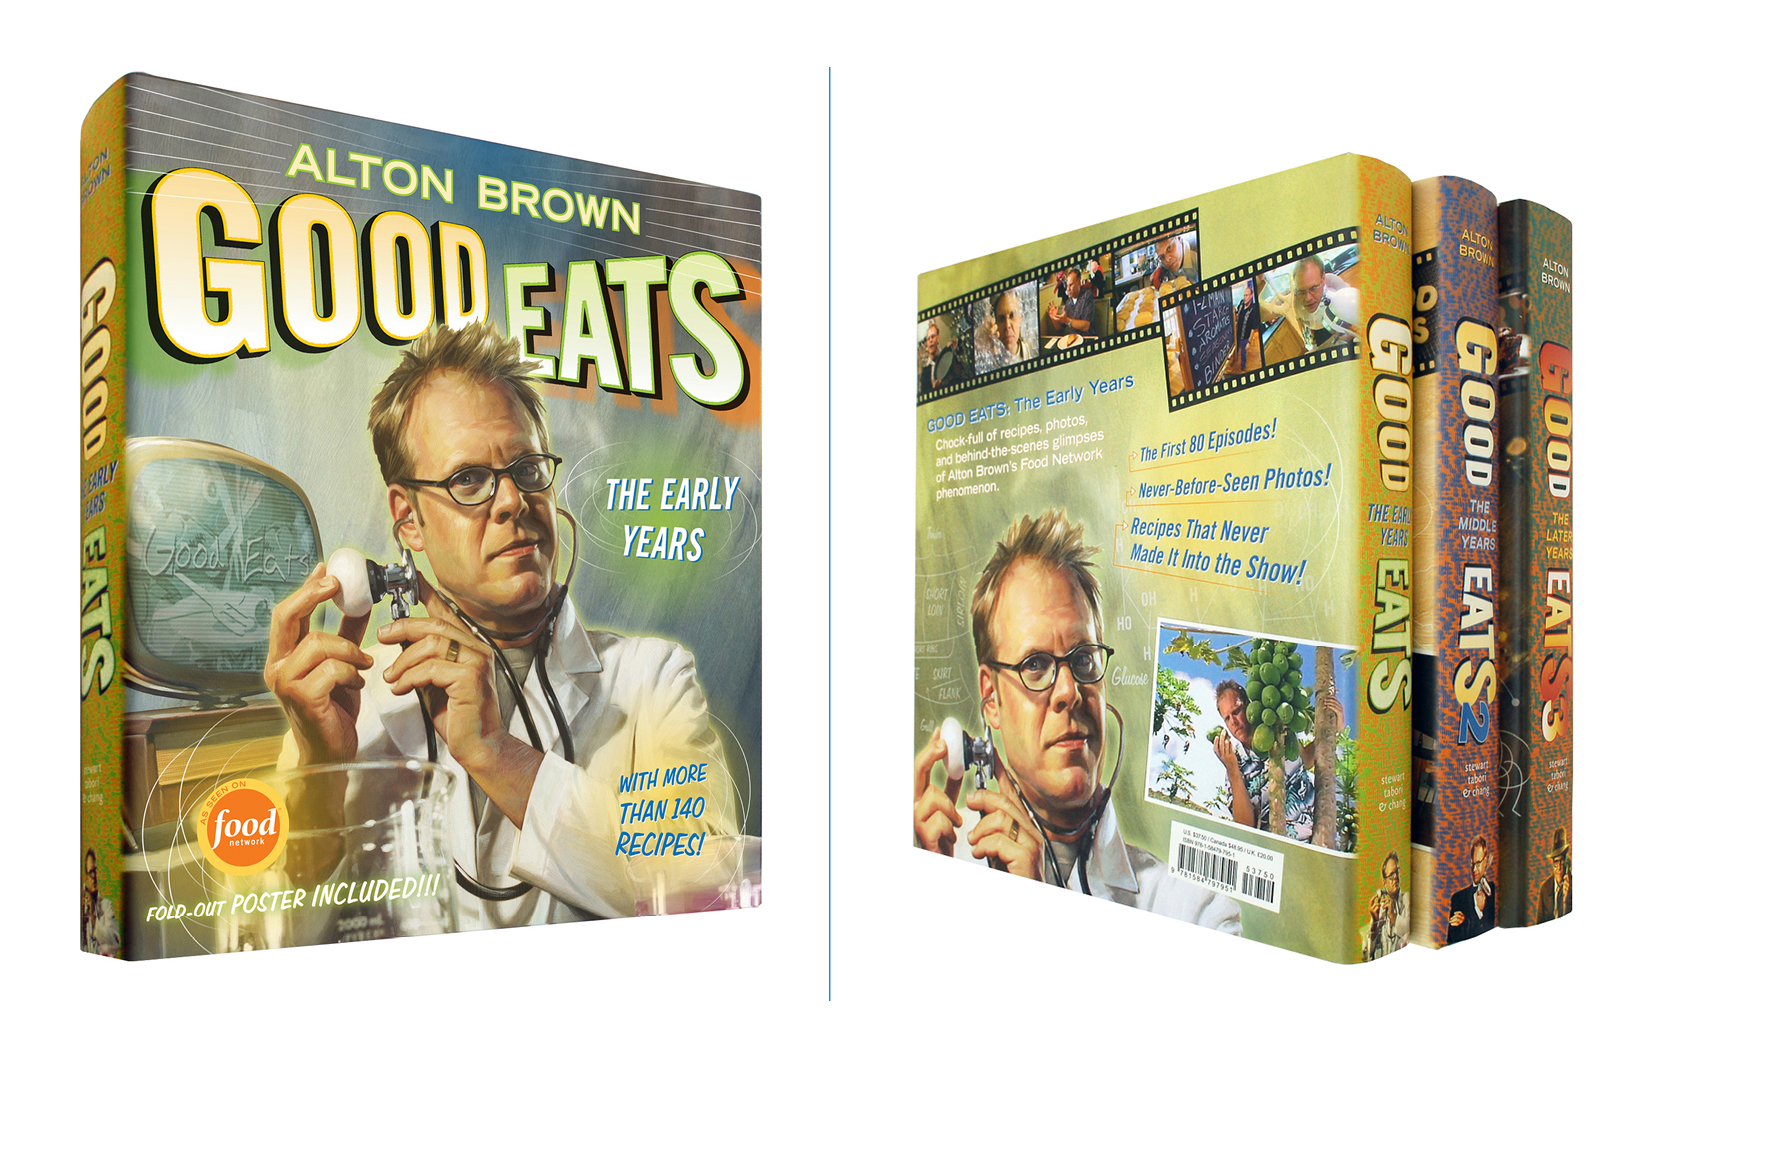 Good Eats, first volume in a three book series -  9 X 10 in., 396 pg., hardcover with poster jacket. Design; Galen Smith, Danielle Young // Illustration; Mike Koelsch, Eric Cole // Publisher; Stewart, Tabori & Chang